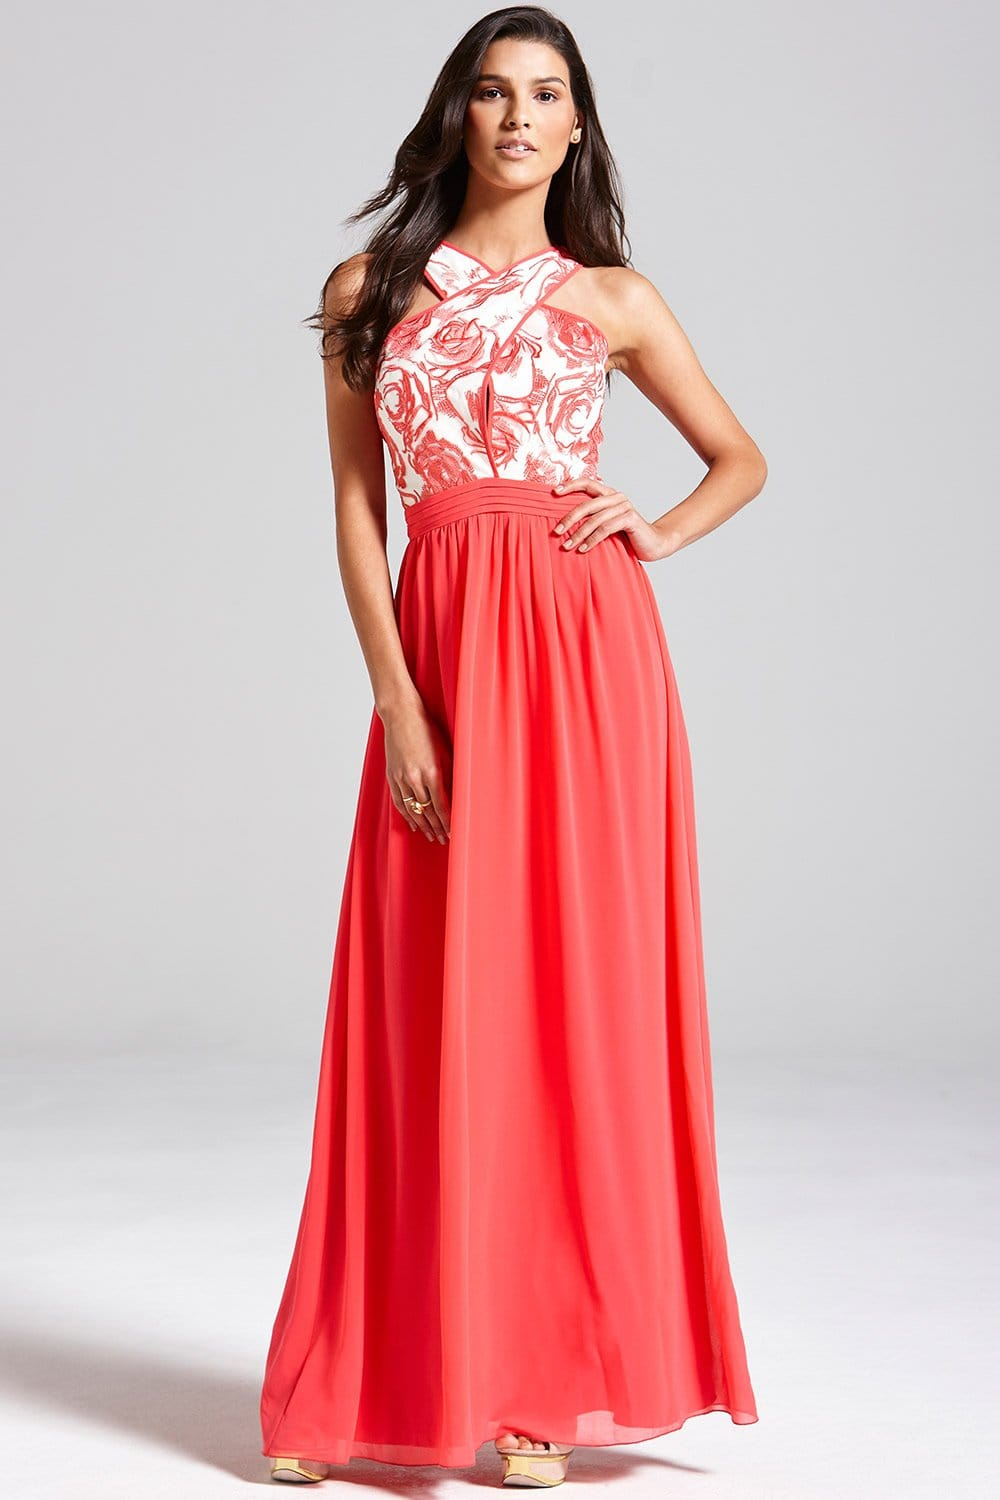 Coral and Cream Floral Top Maxi Dress - from Little Mistress UK